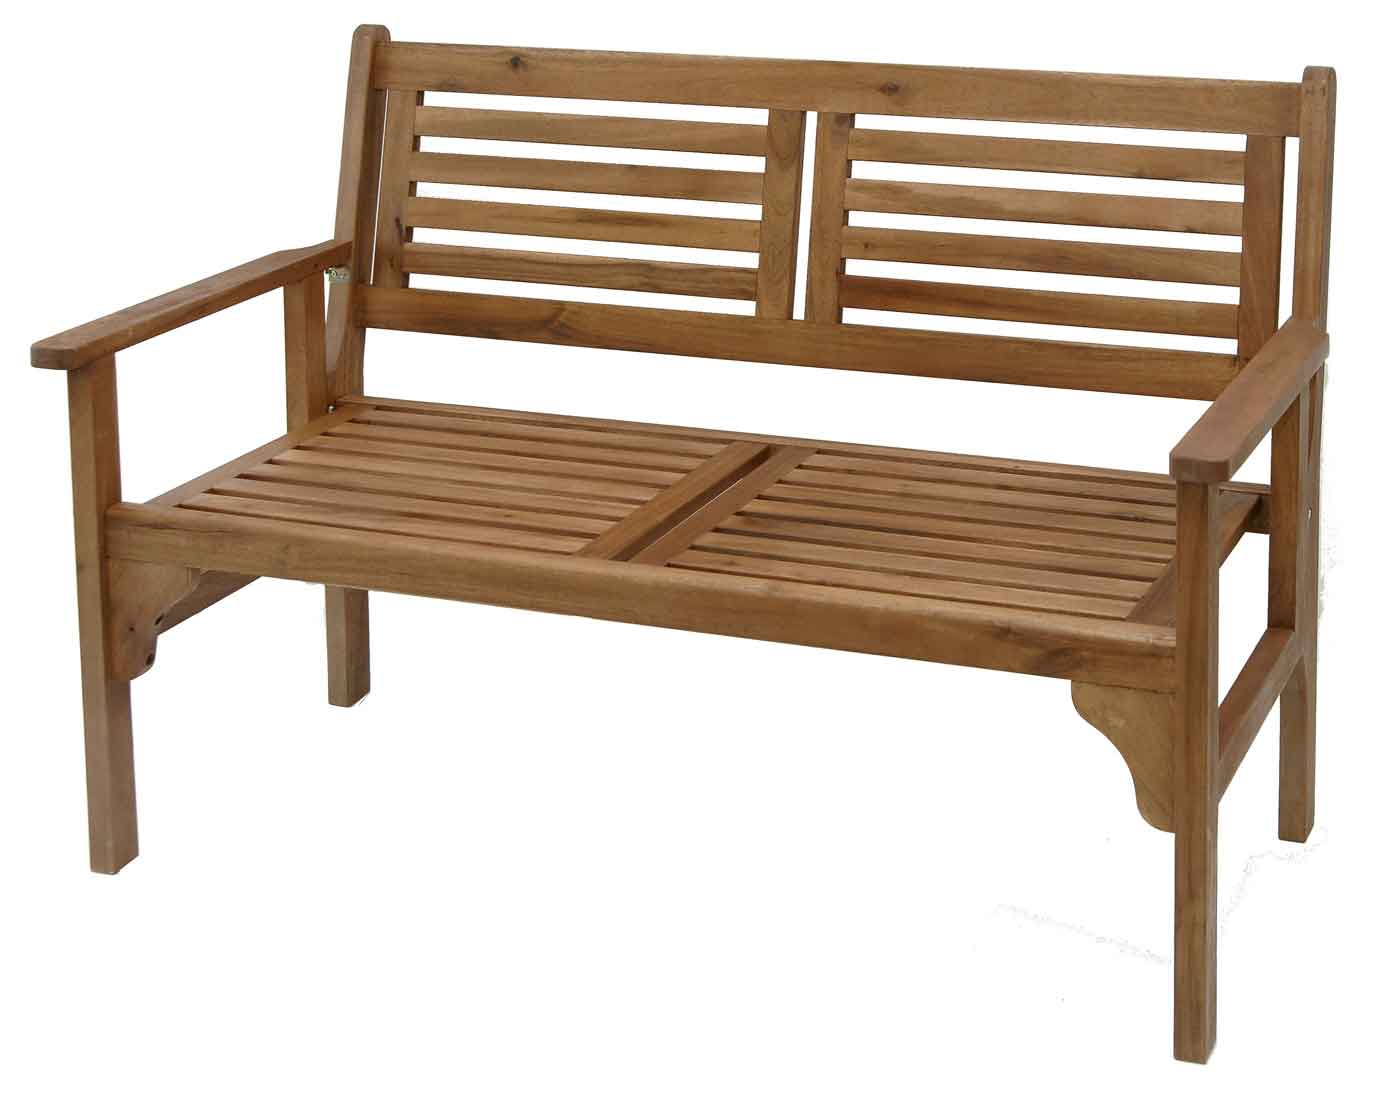 WOODEN FOLDING BENCH 2 POS 1,15Χ125Χ48*91cm -